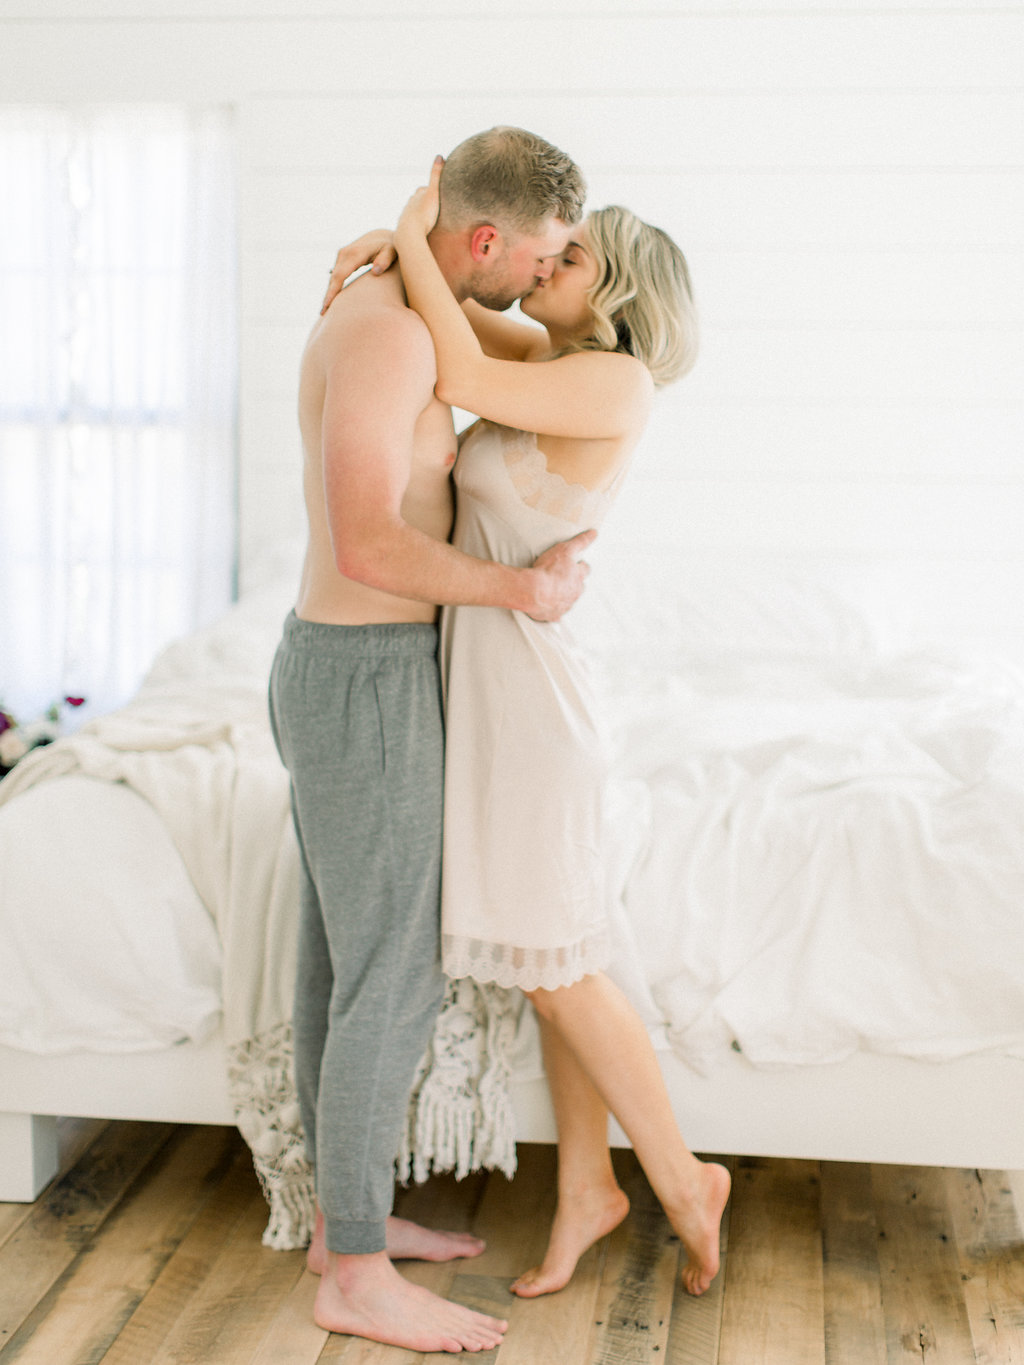 Farmhouse Wedding | Intimate Elopement | Jordan & Alaina Photography | Home Engagement Session | Joy Wed | Fine Art Wedding Blog | Canadian Wedding | Stacey Foley Design | Canmore Wedding Planner